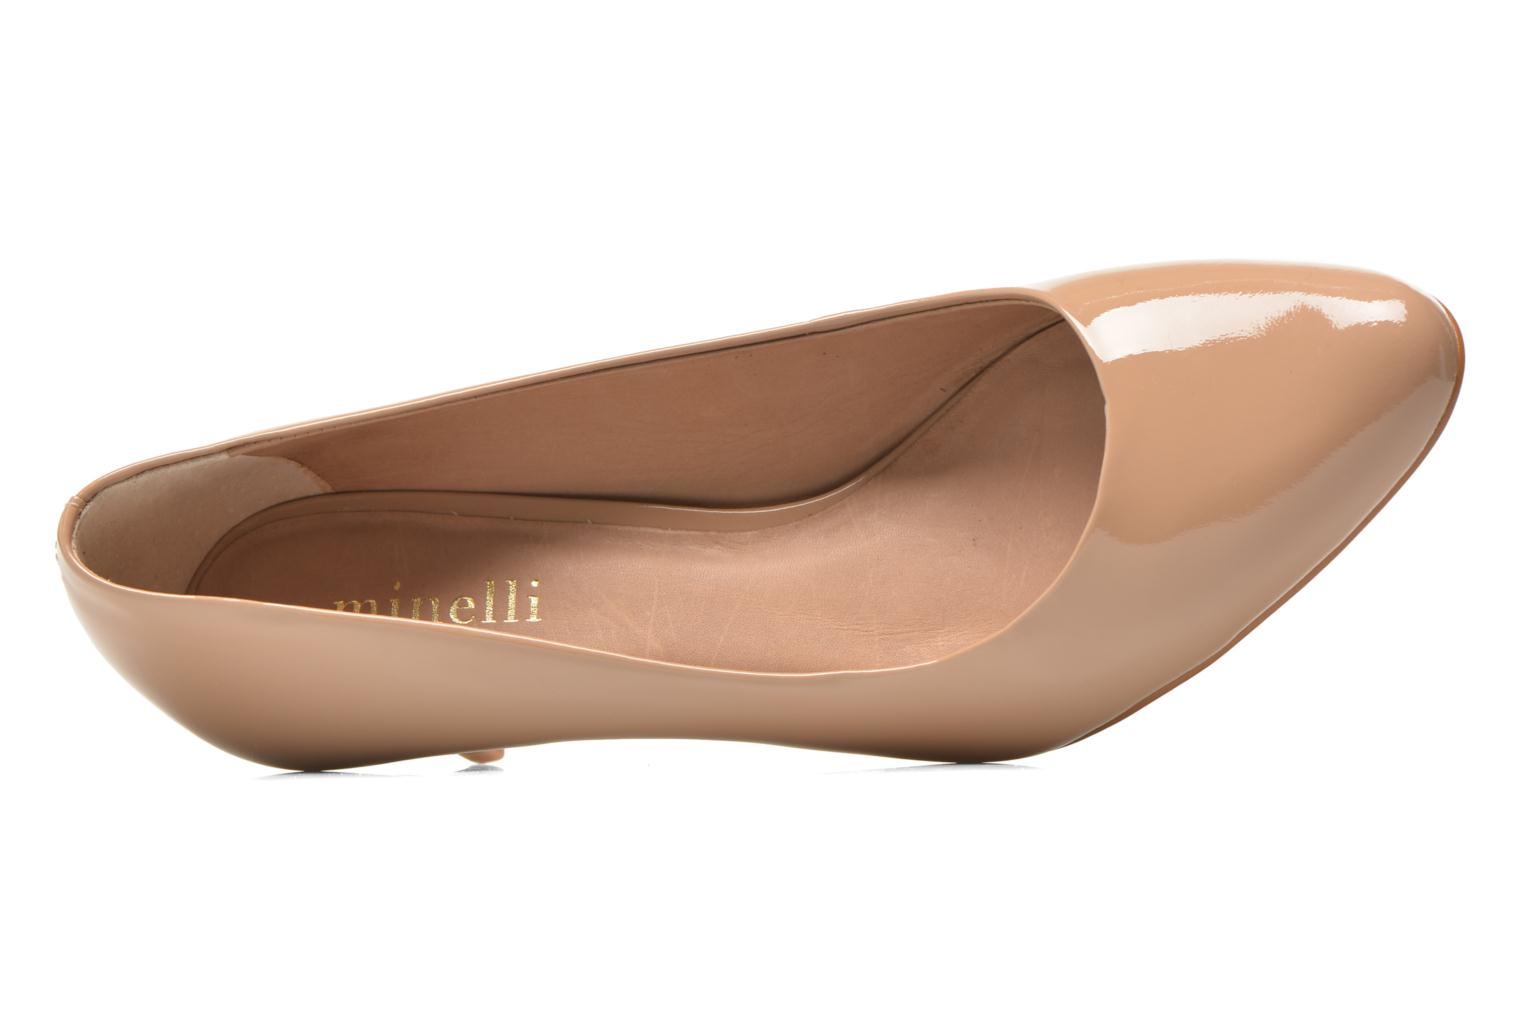 High heels Minelli F91 400/VER Beige view from the left